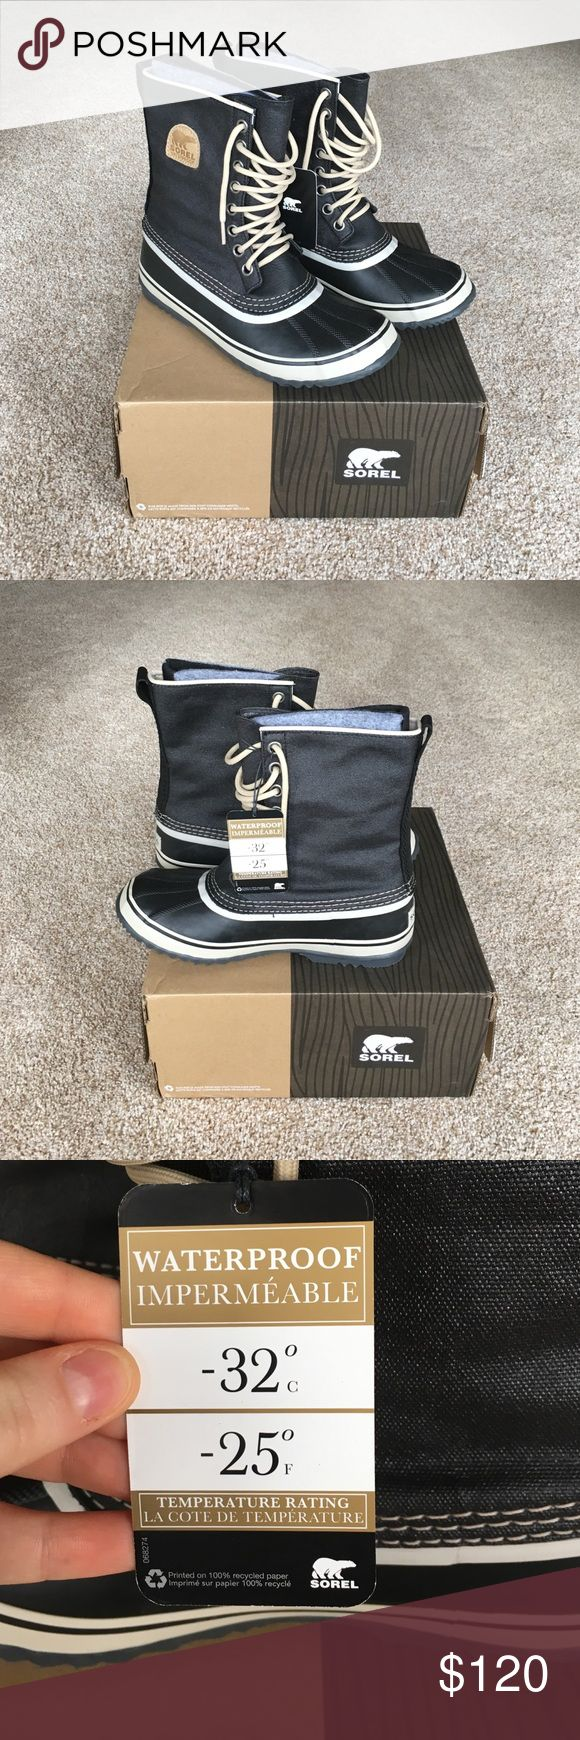 Brand New Sorel Women's Winter Boots Size 10 Sorel Winter Boots New with tags. Never been worn. Color is black with fossil and comes also with black laces. Sorel Shoes Winter & Rain Boots